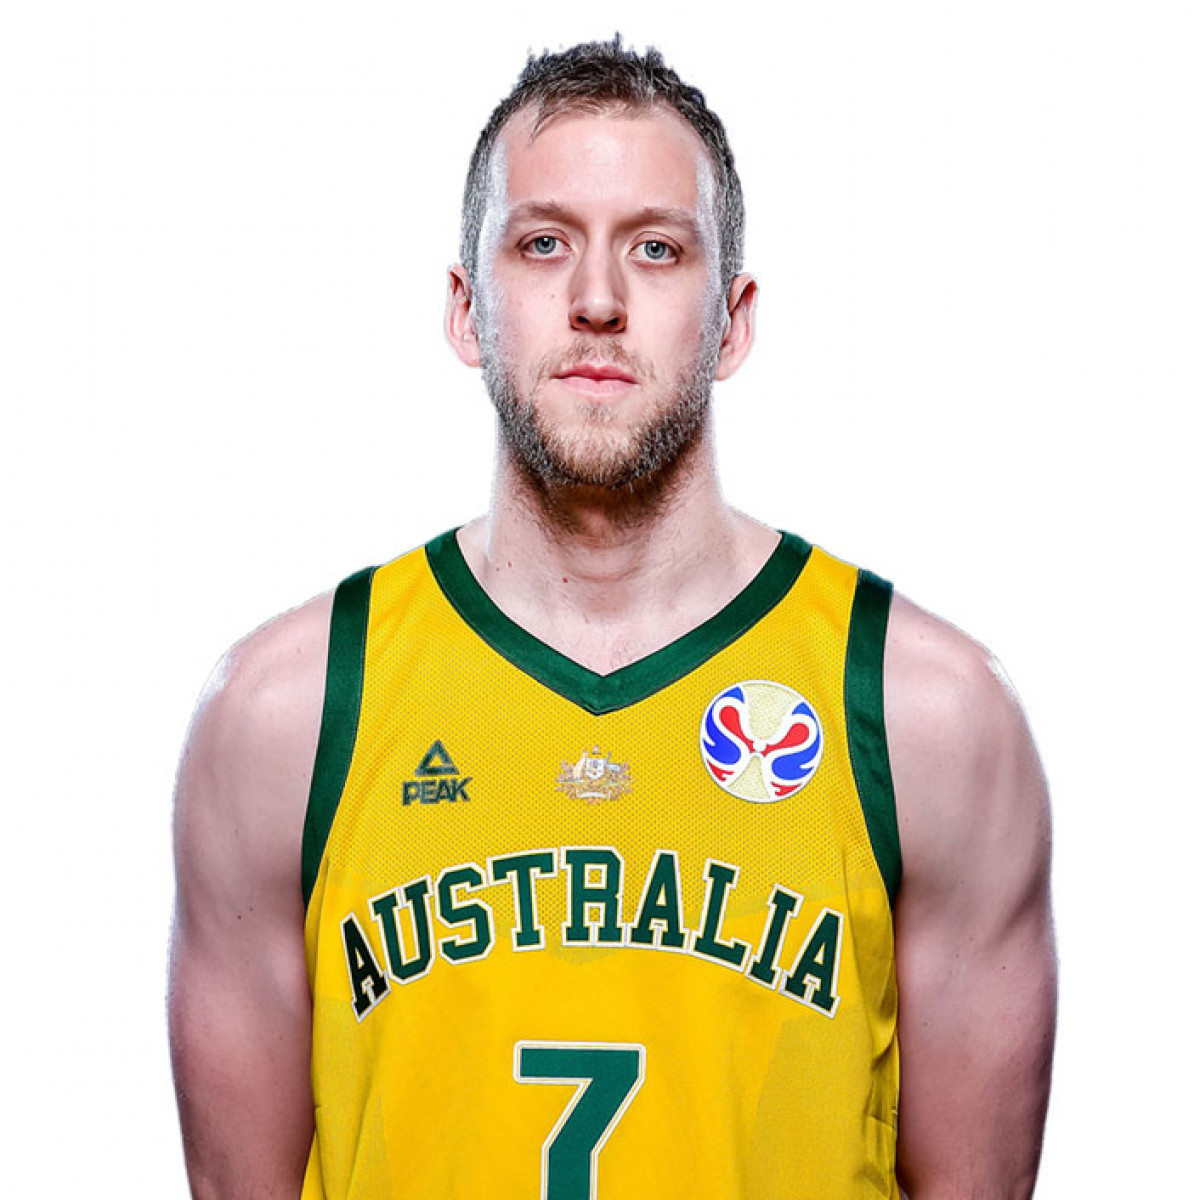 Photo of Joe Ingles, 2019-2020 season